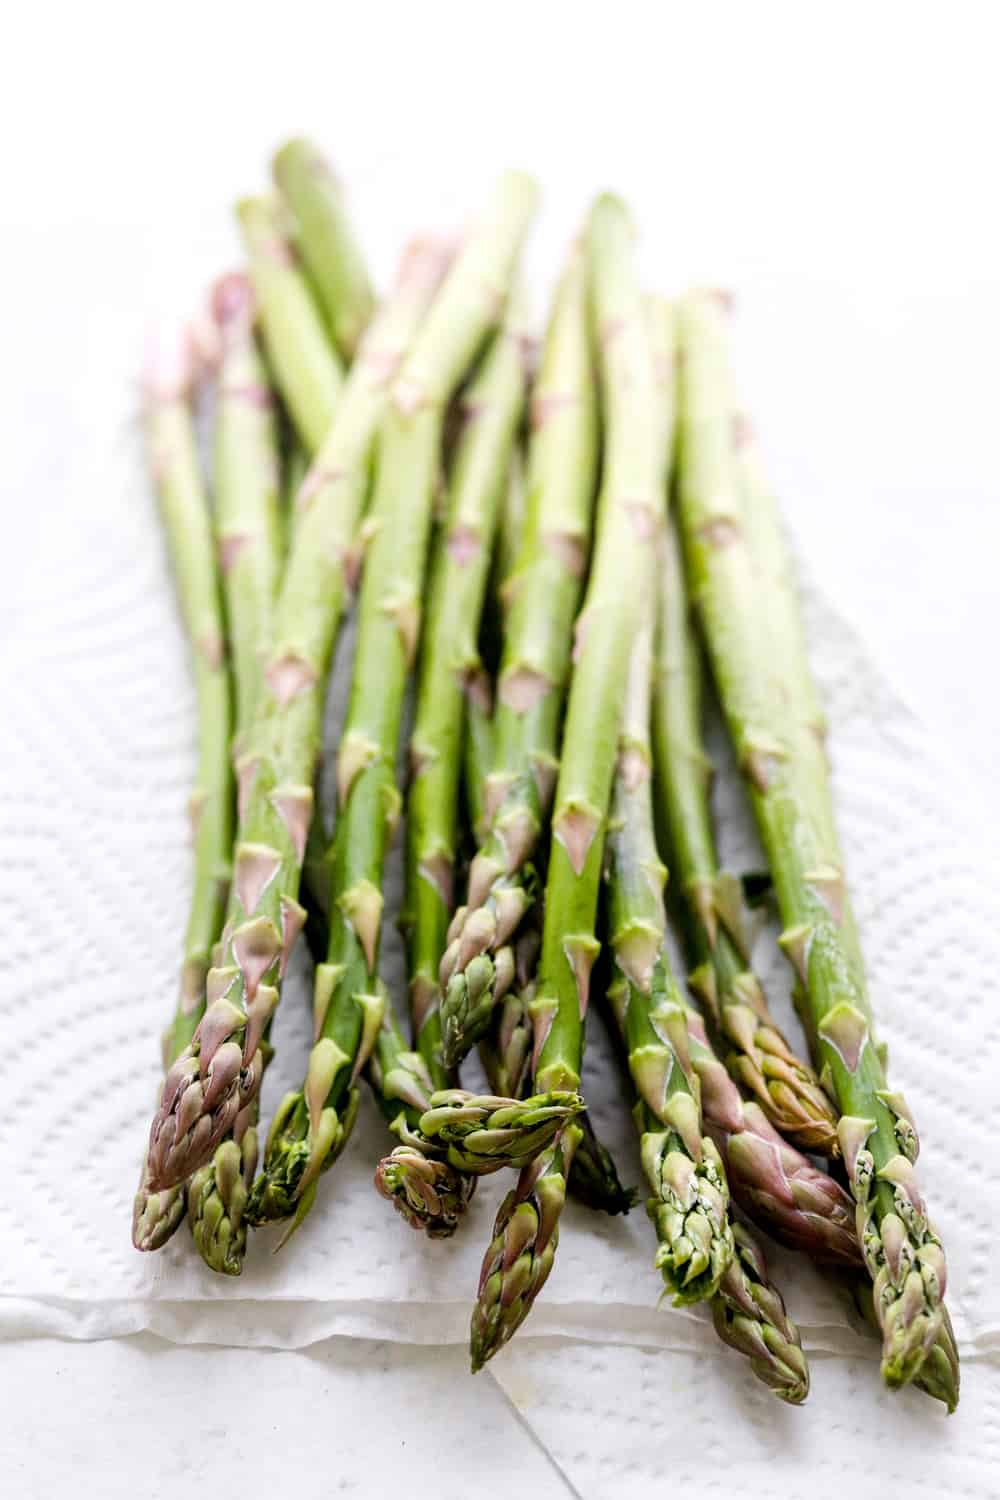 A bunch of green asparagus in a pile on top of a folded white paper towel.